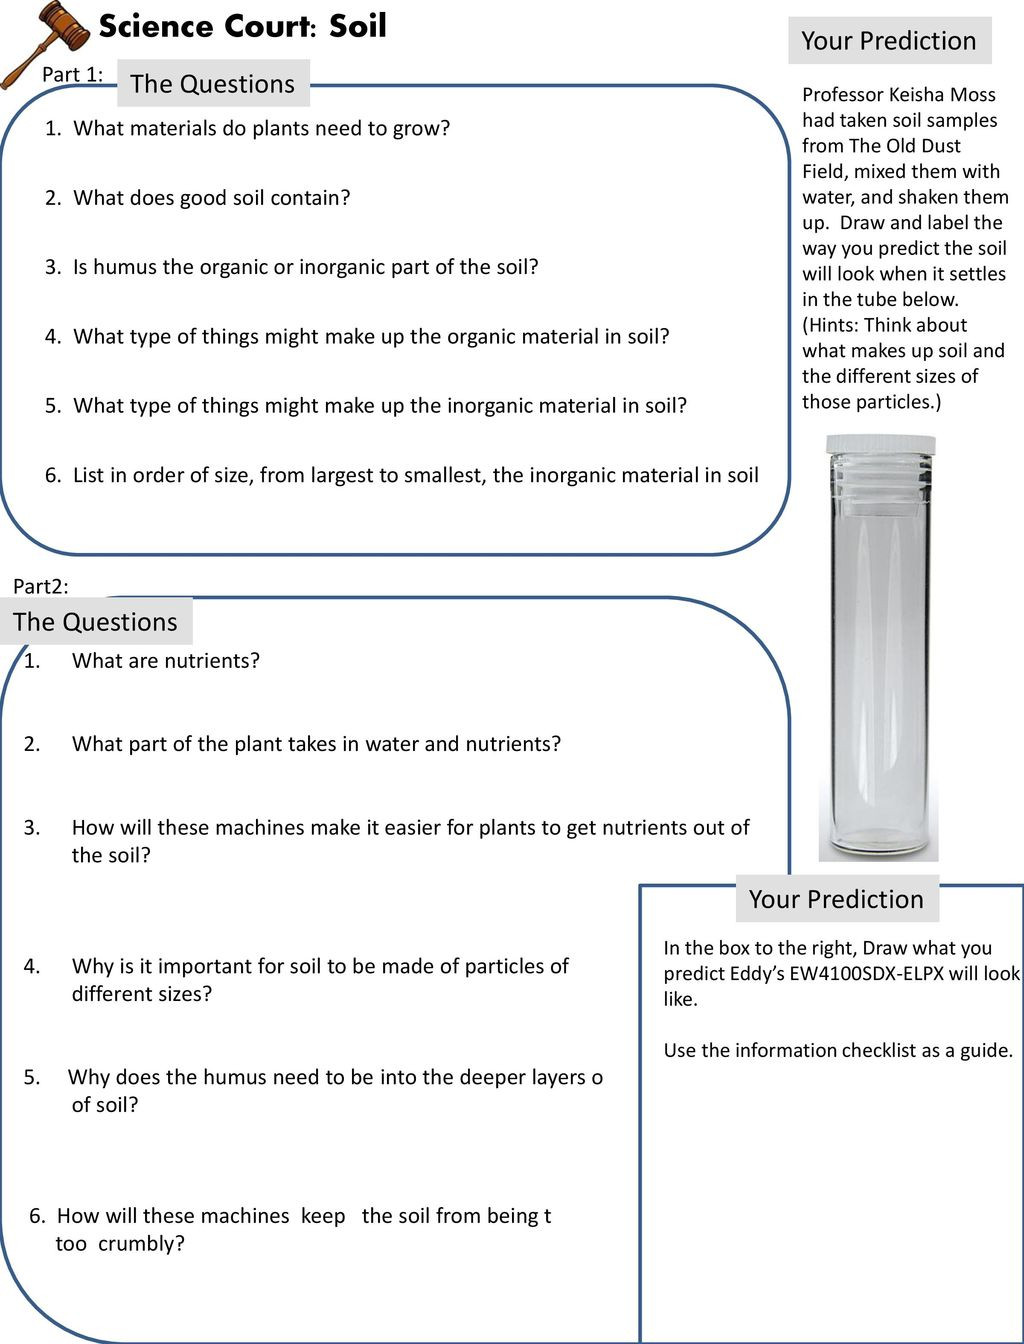 Layers Of soil Worksheet Science Court soil Your Prediction the Questions the